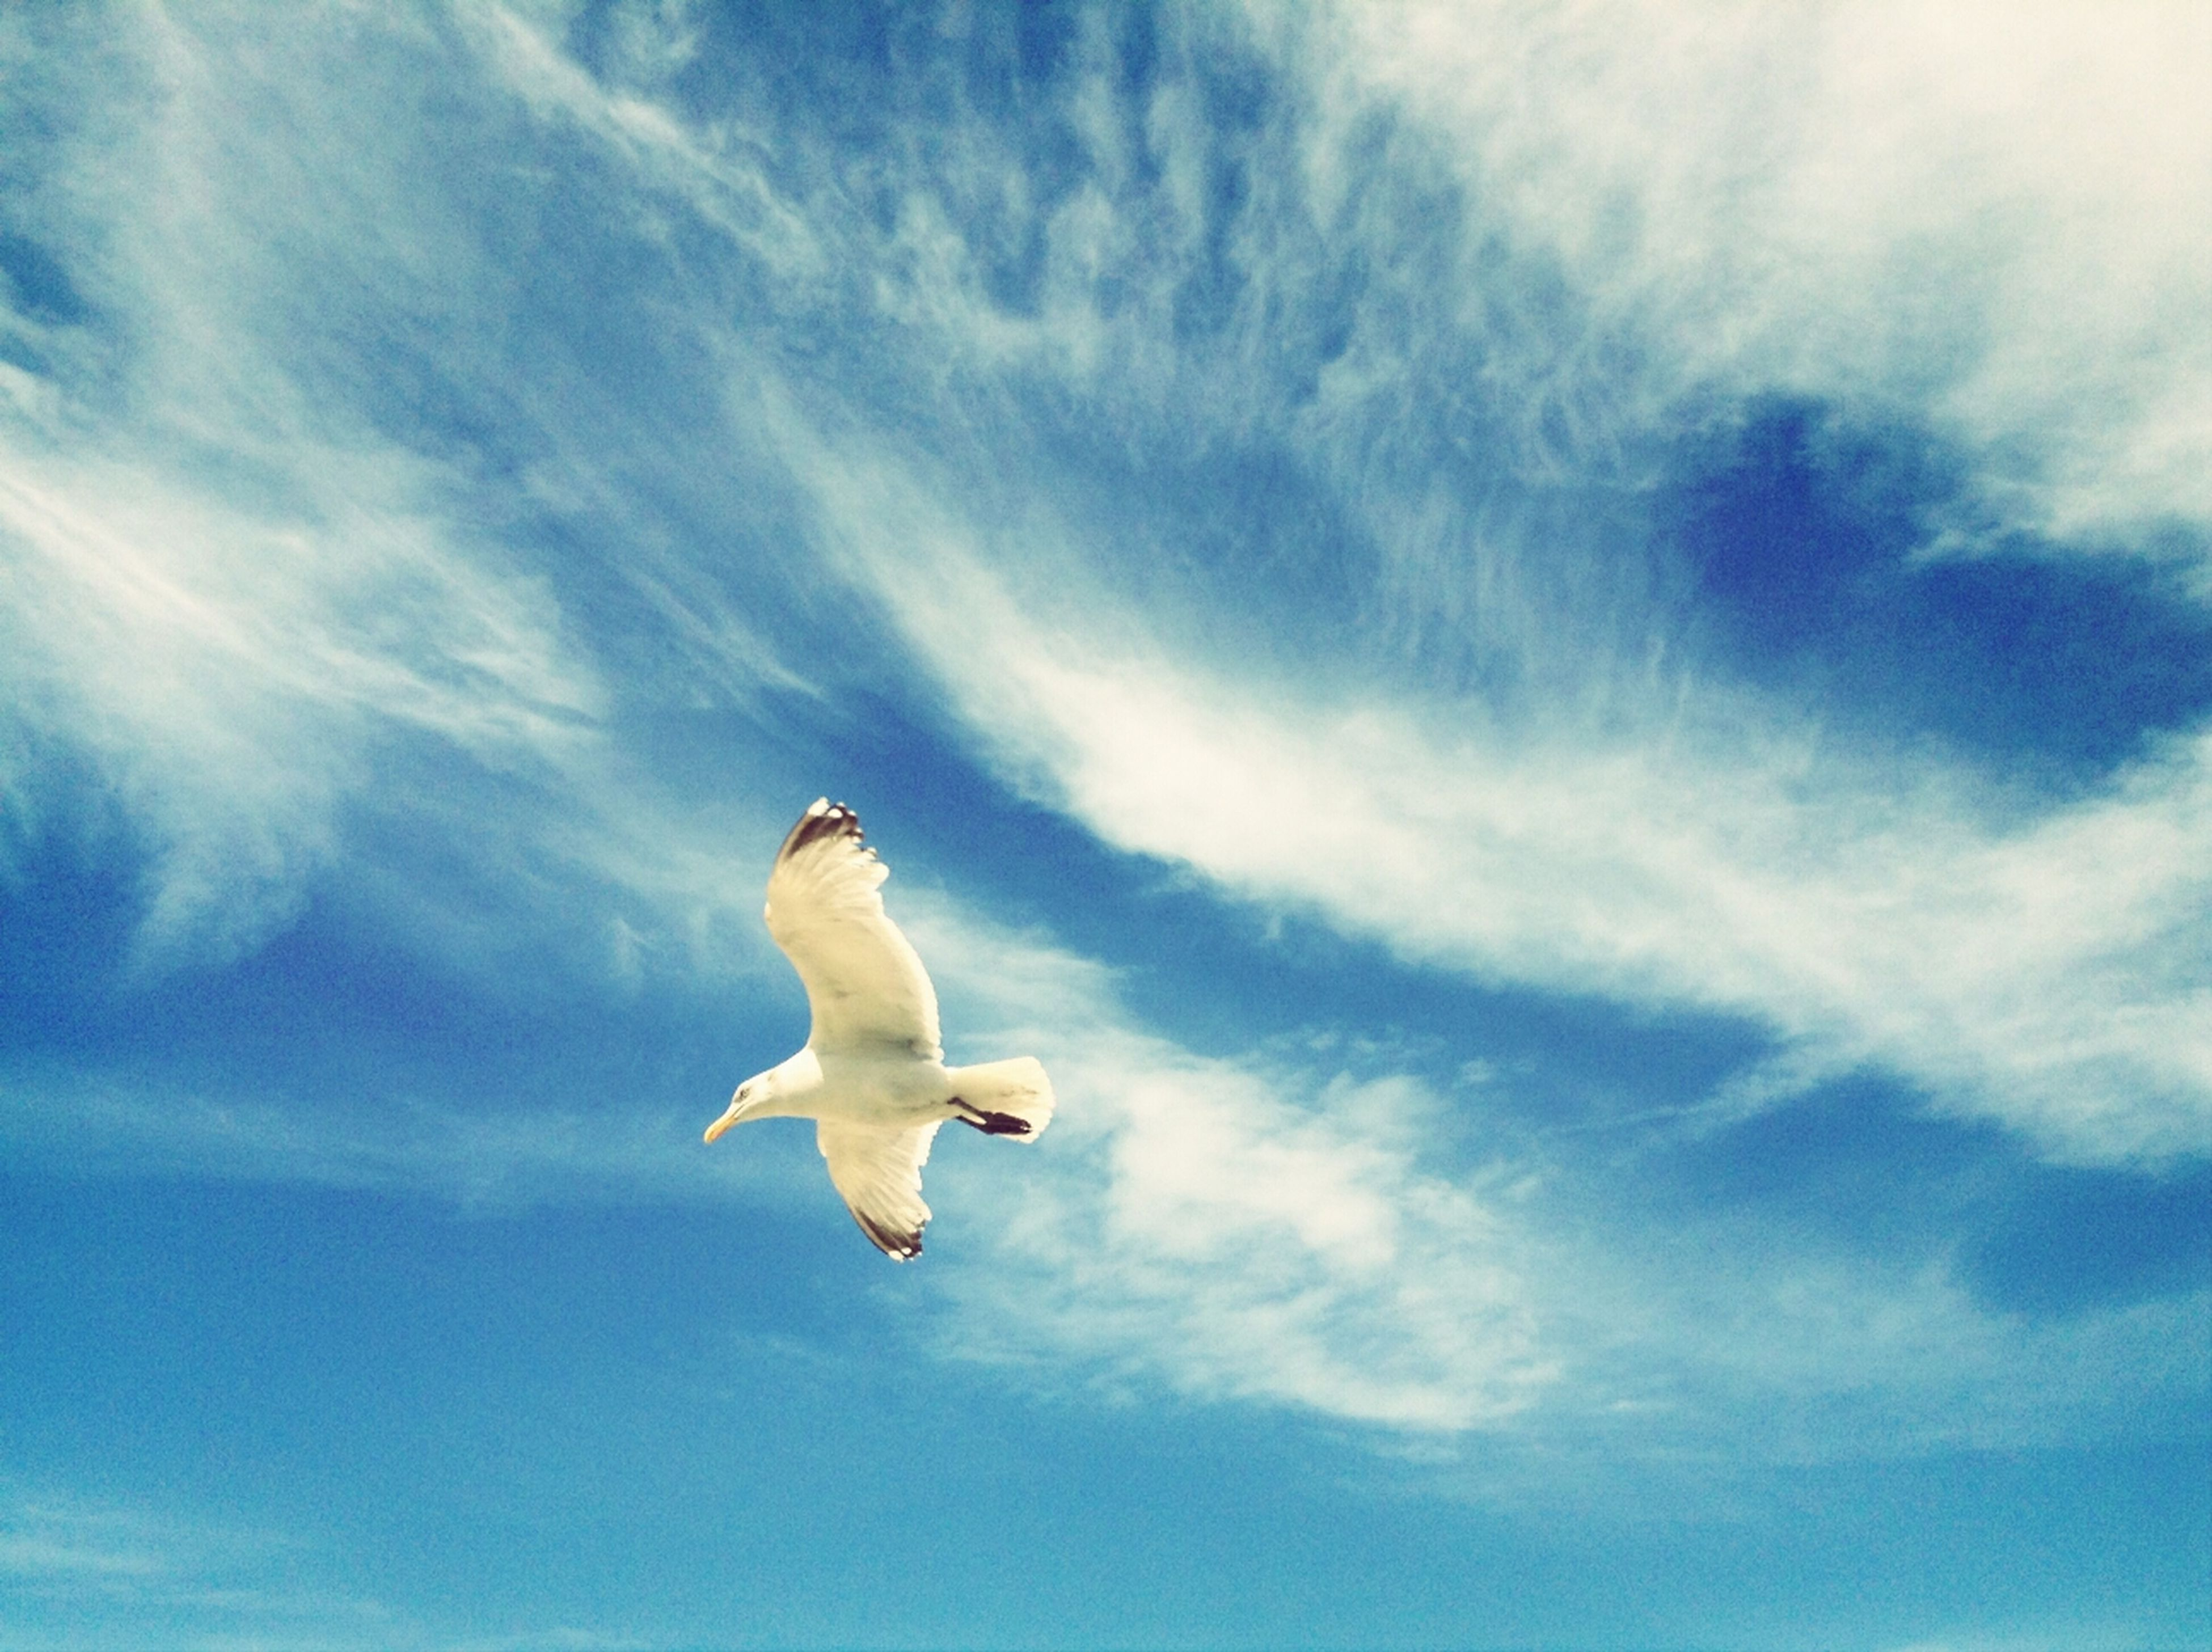 bird, animal themes, animals in the wild, low angle view, wildlife, flying, seagull, sky, spread wings, one animal, cloud - sky, white color, mid-air, cloud, full length, nature, blue, cloudy, day, outdoors